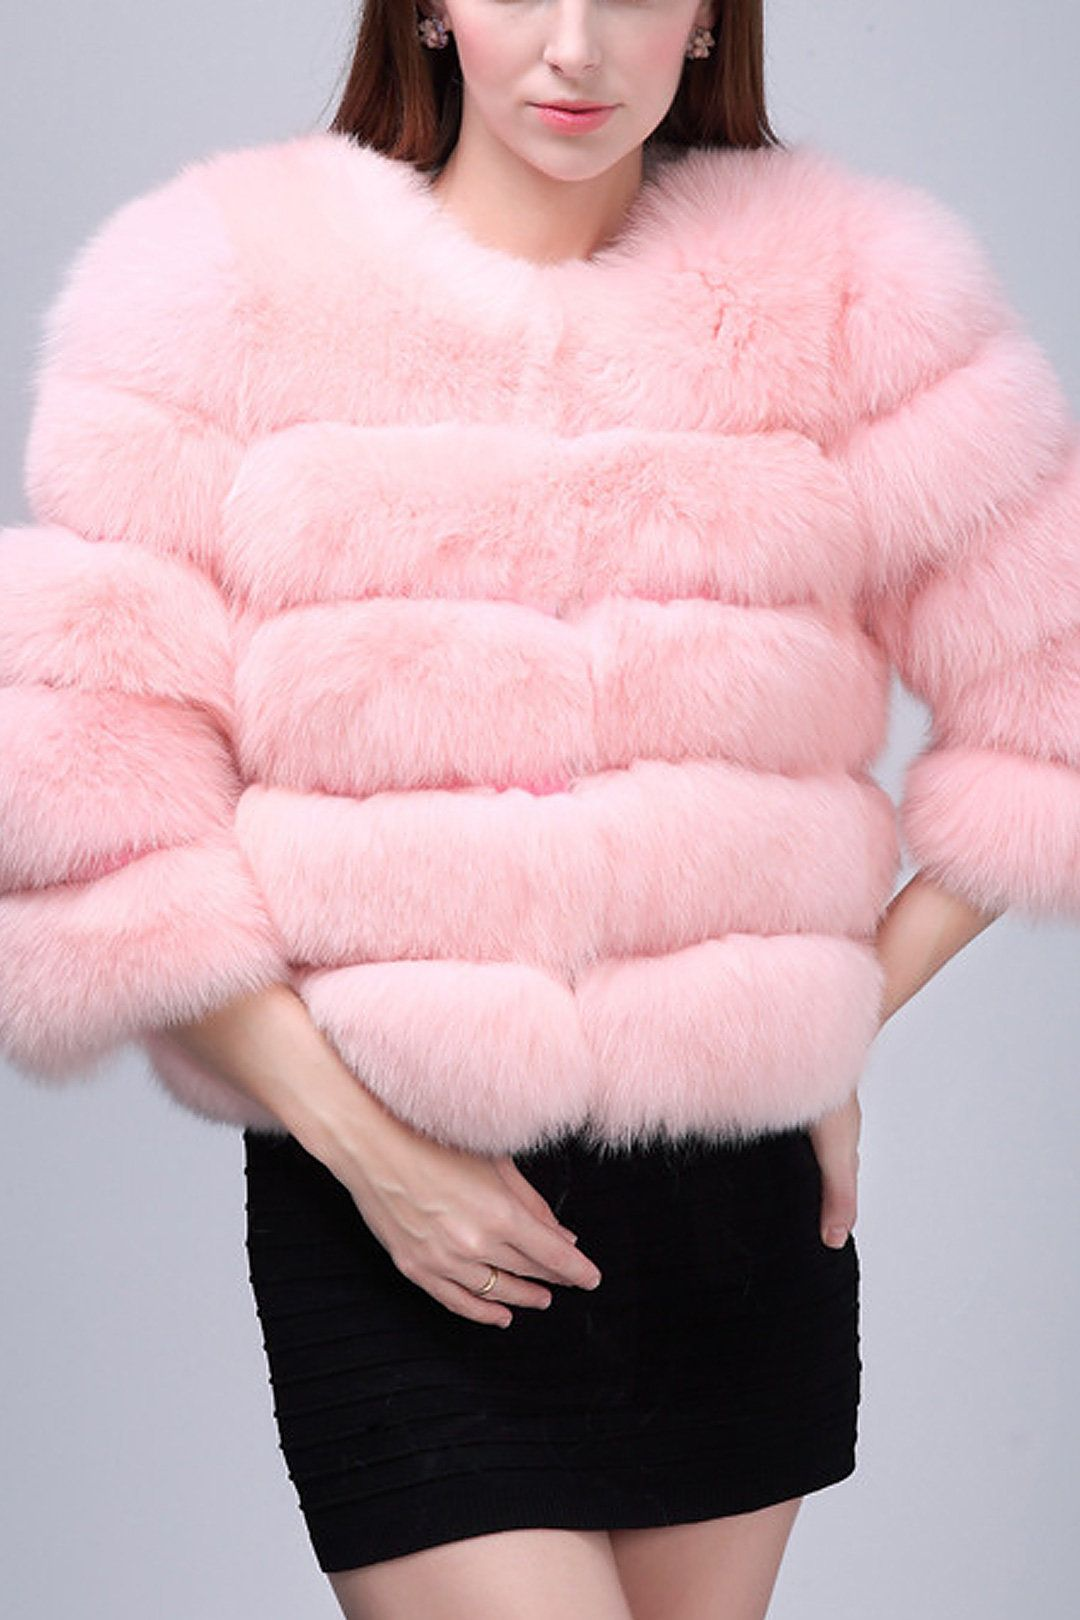 Pink Fluffy Artificial Fox Coat | Fox coat, Foxes and Eye